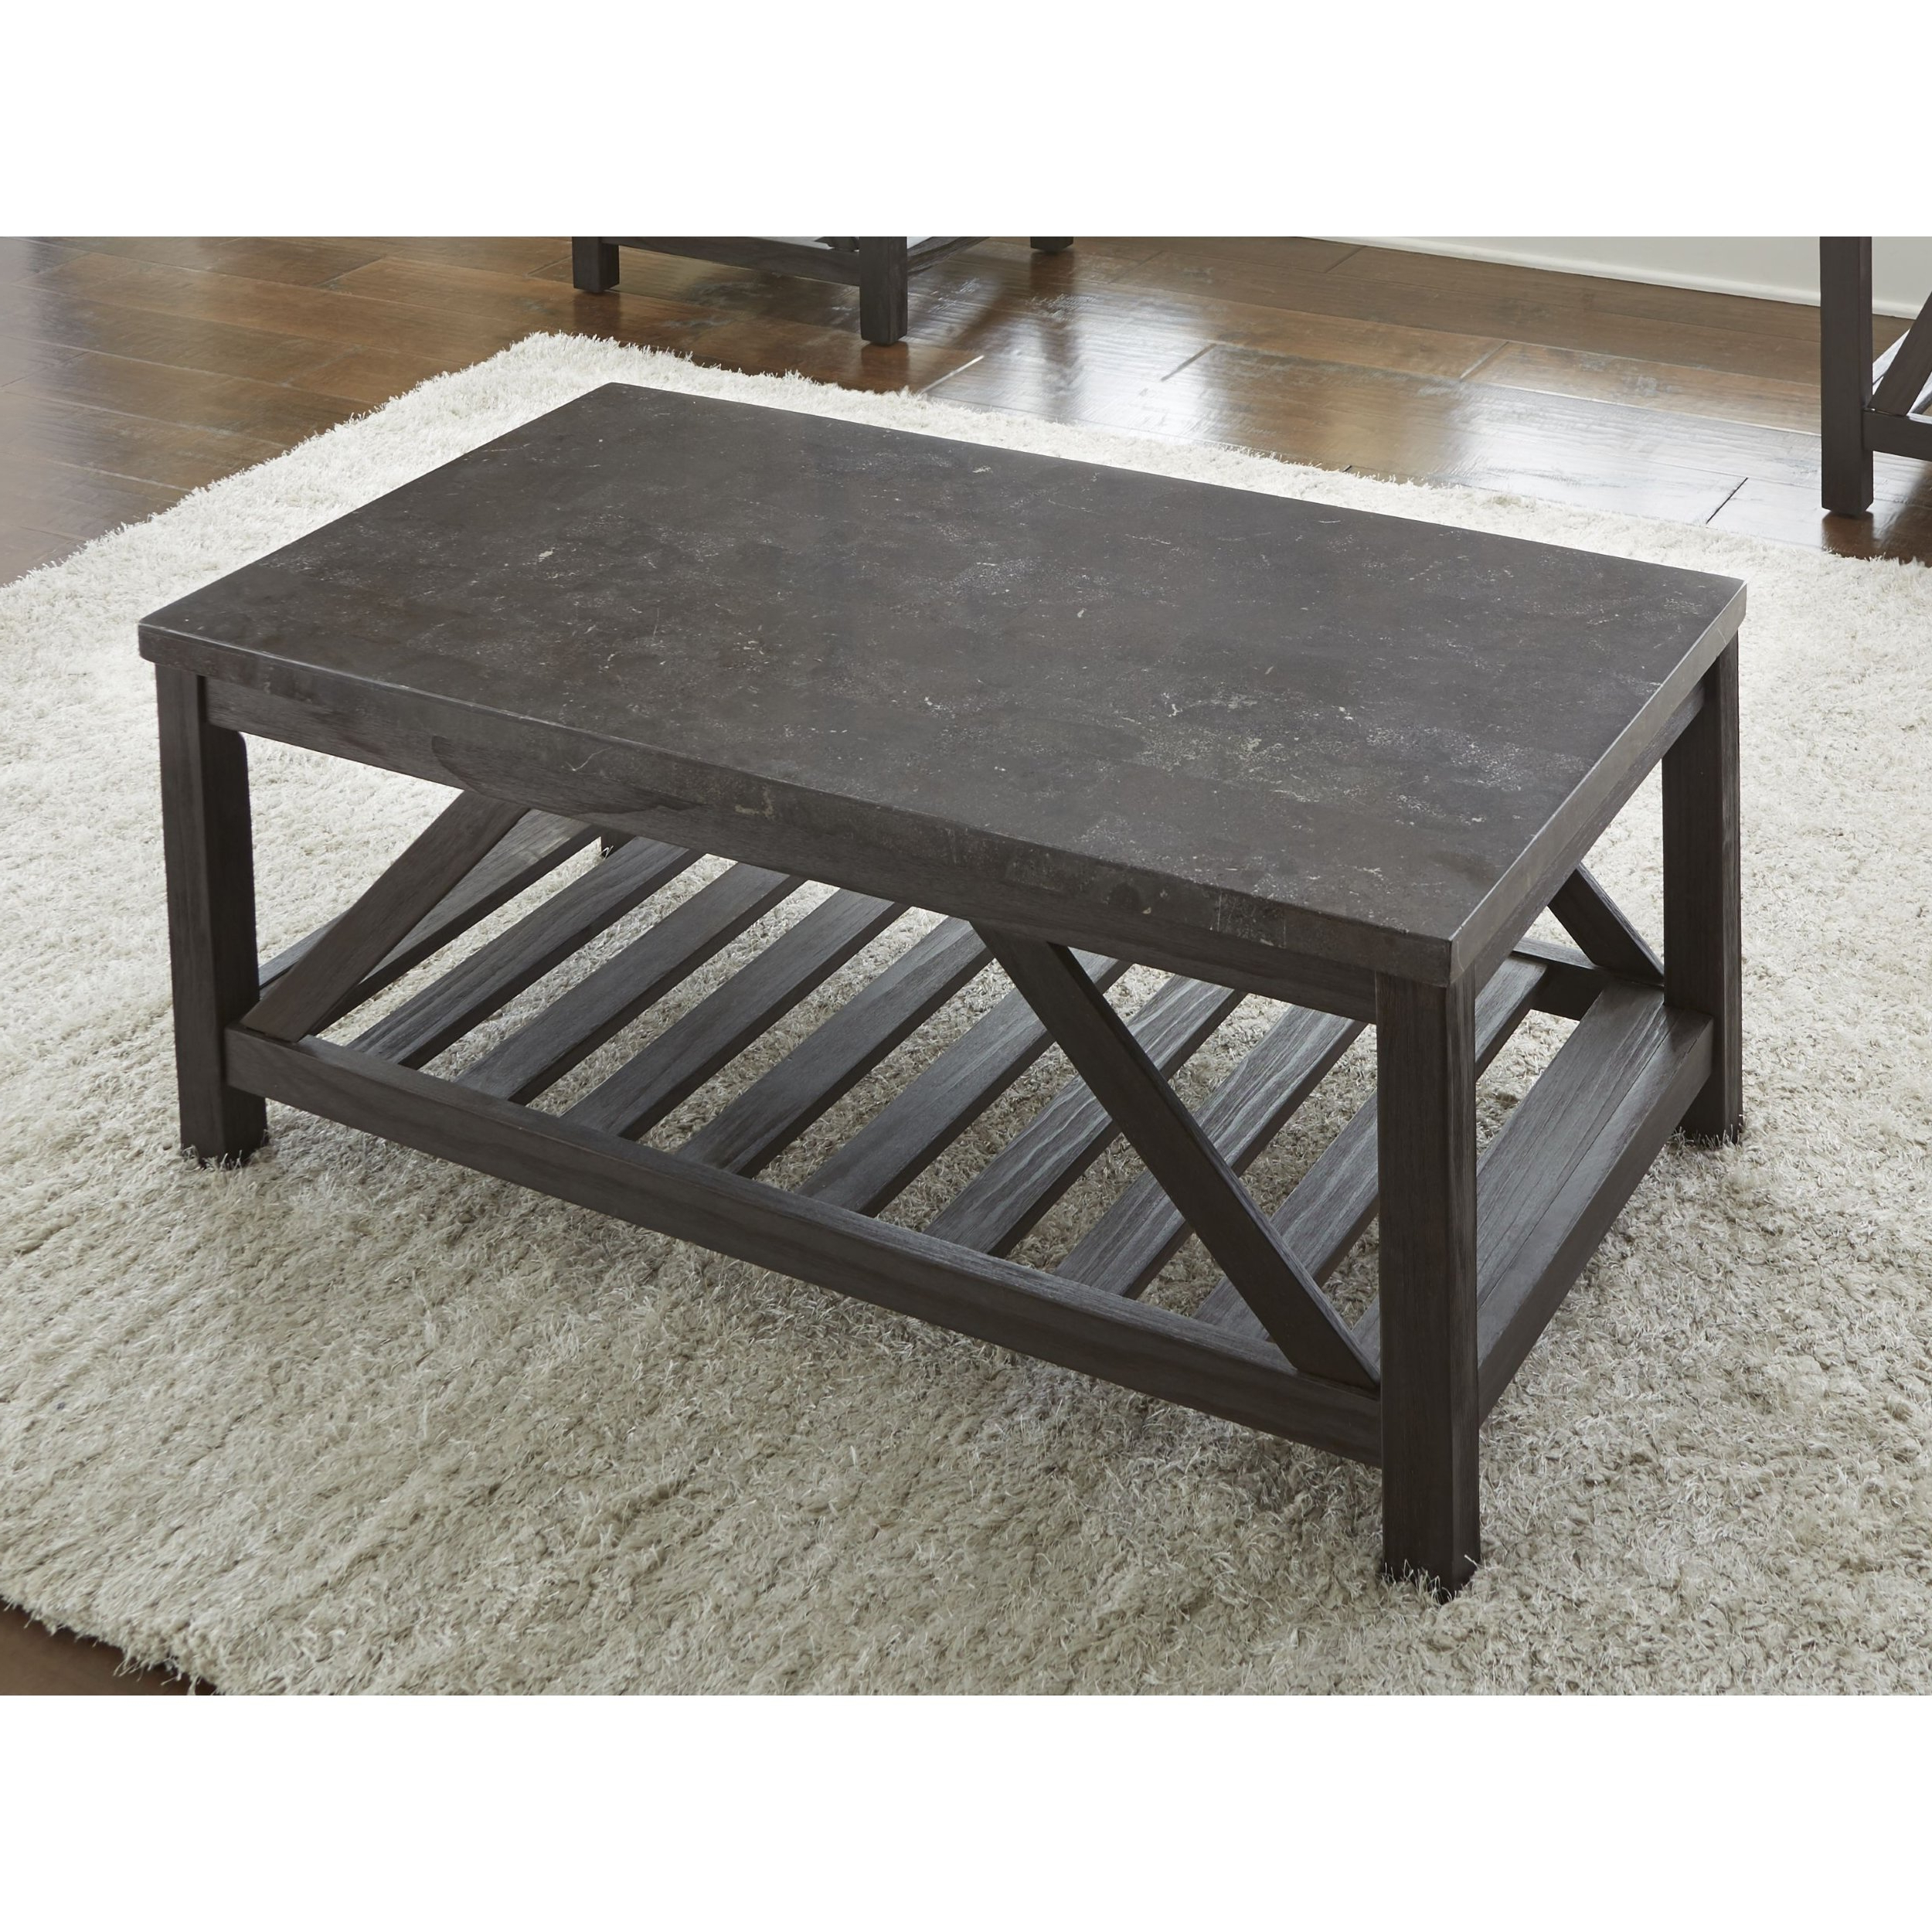 Shop New Badin 48 Inch Rectangle Coffee Table With Bluestone Top Regarding 2018 Bluestone Rustic Black Coffee Tables (View 14 of 20)